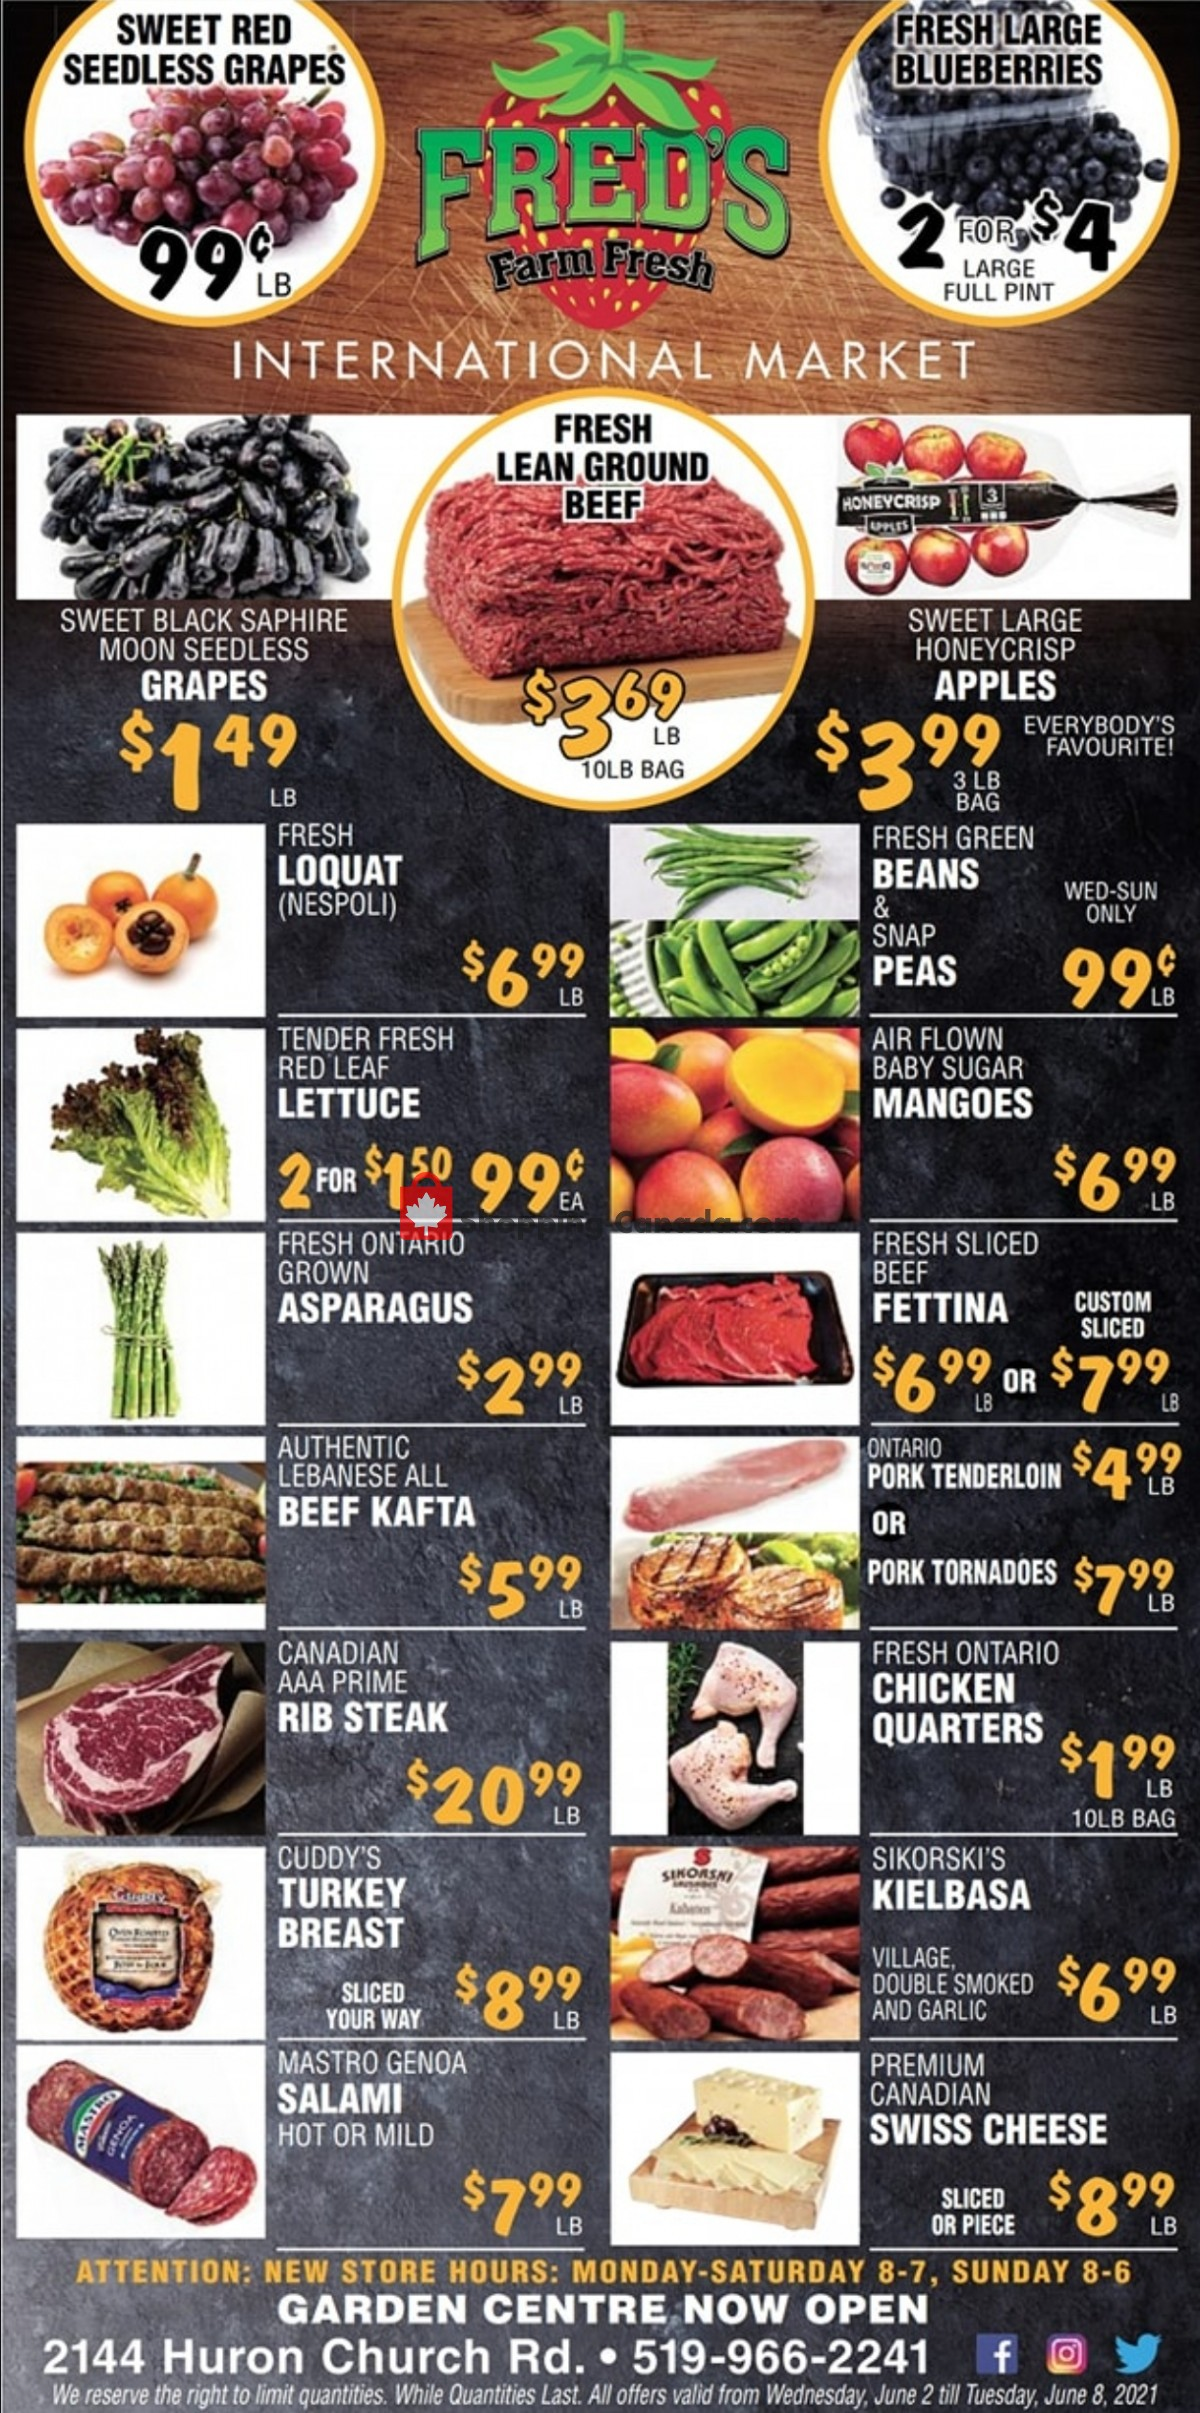 Flyer Fred's Farm Fresh Canada - from Wednesday June 2, 2021 to Tuesday June 8, 2021